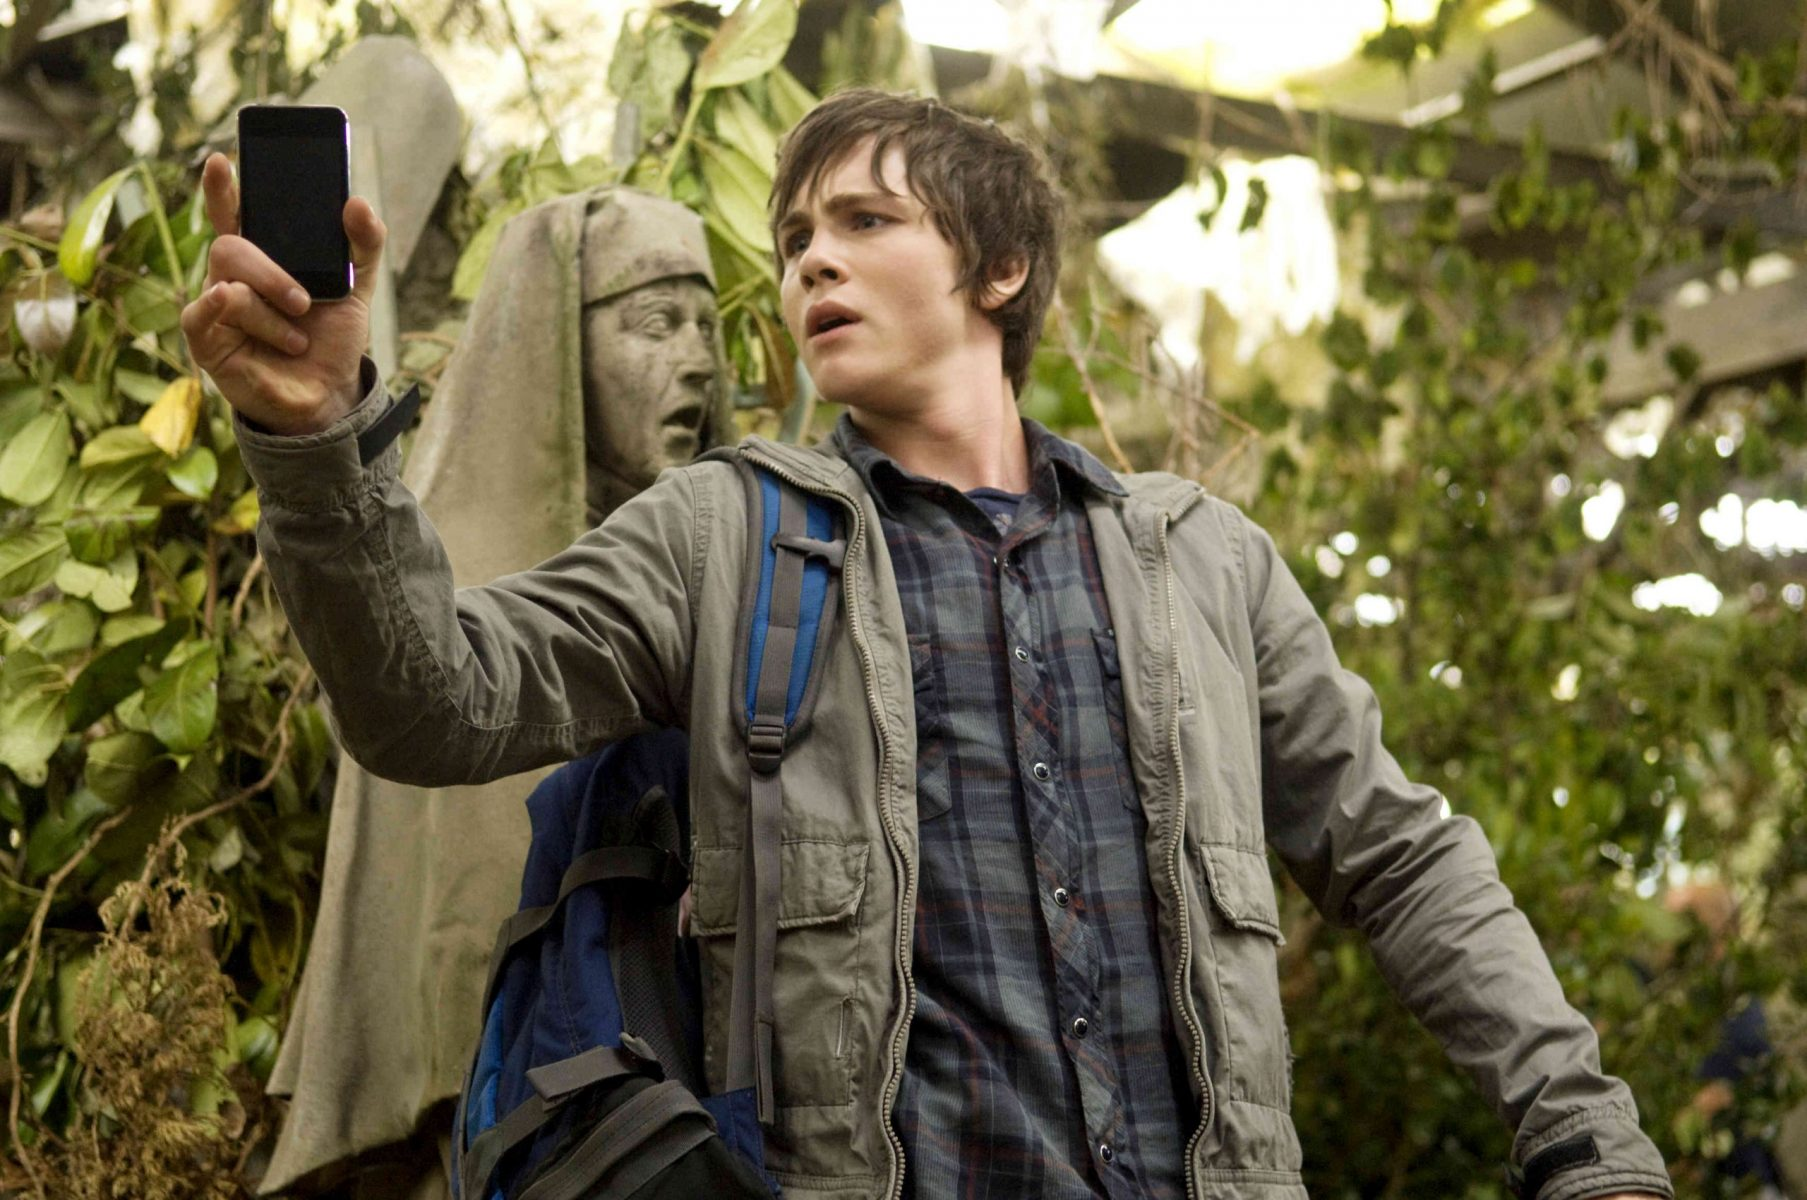 Screenshot from Percy Jackson film in an article about bad film adaptations